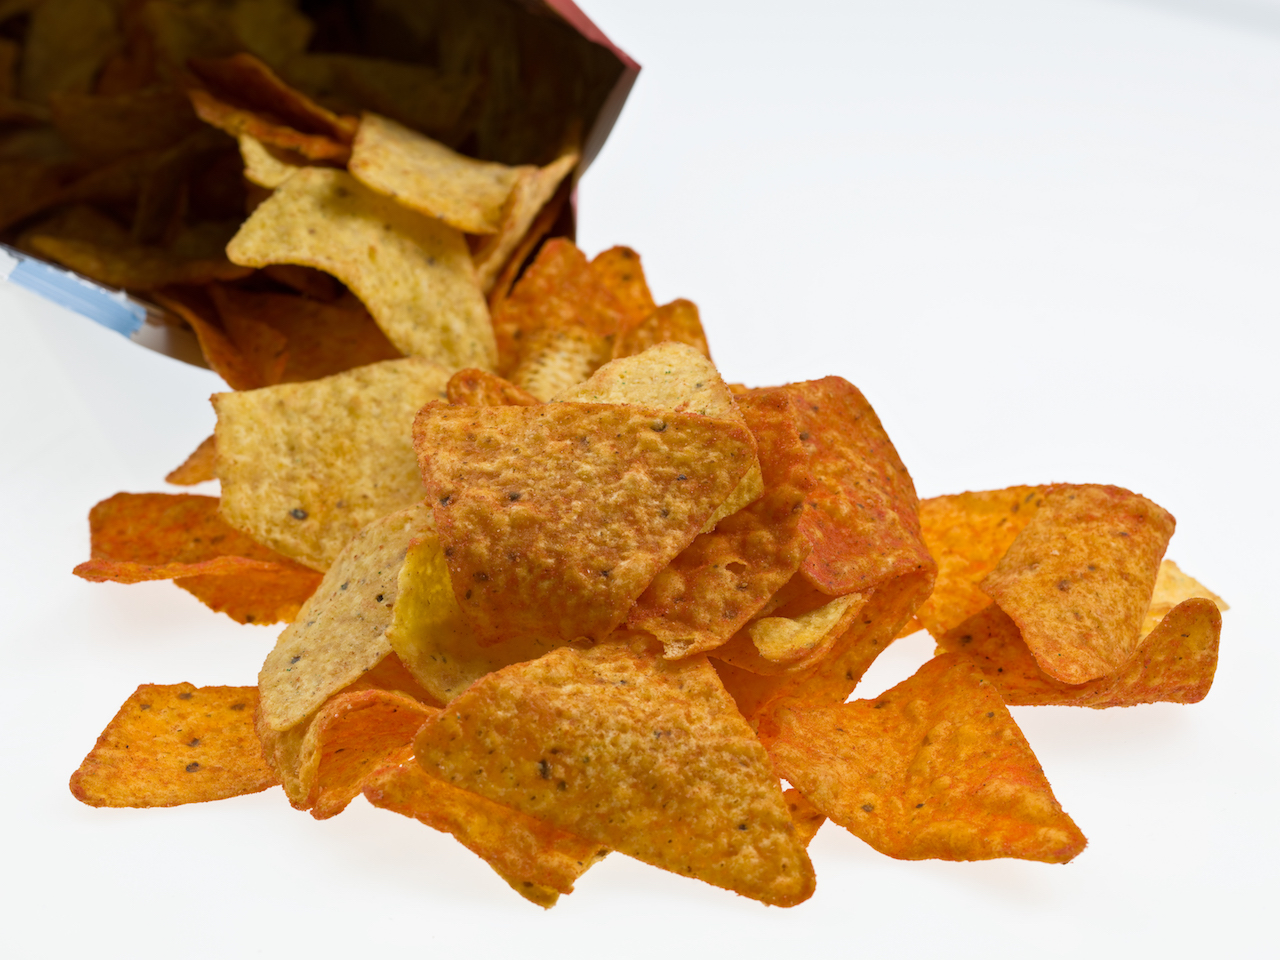 Is Doritos Actually Making A Chip For Women? The Real Scoop On #LadyDoritos